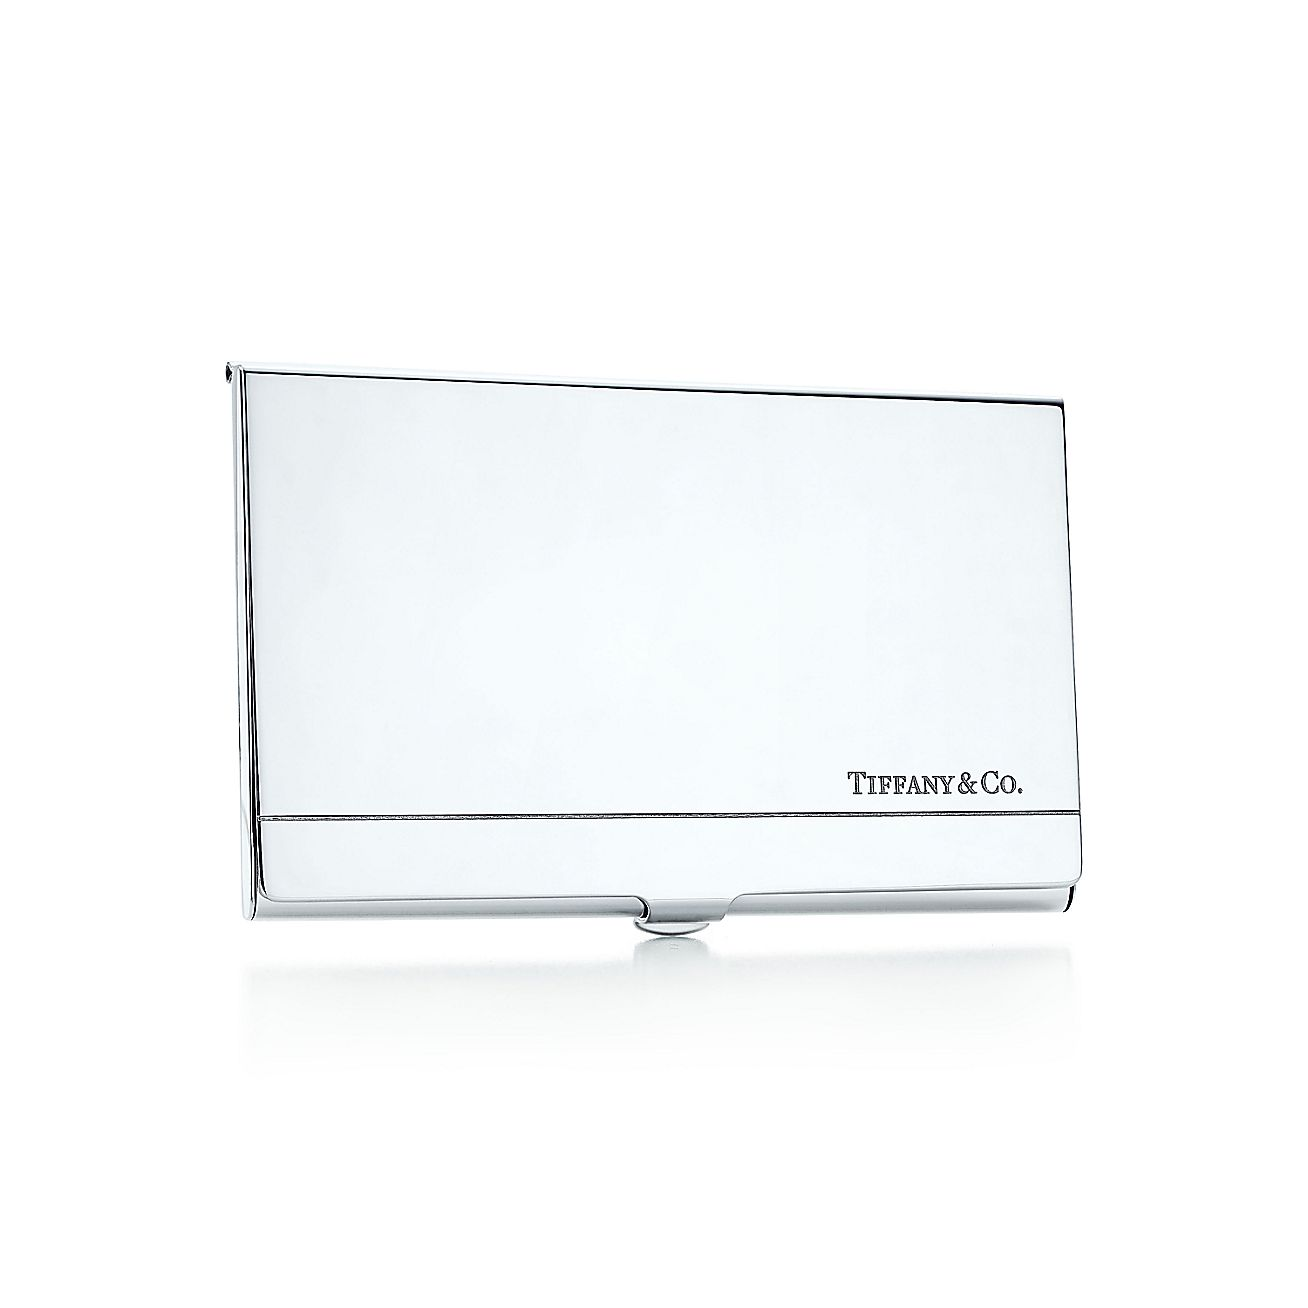 Tiffany cor business card case in sterling silver for Tiffany and co business card holder